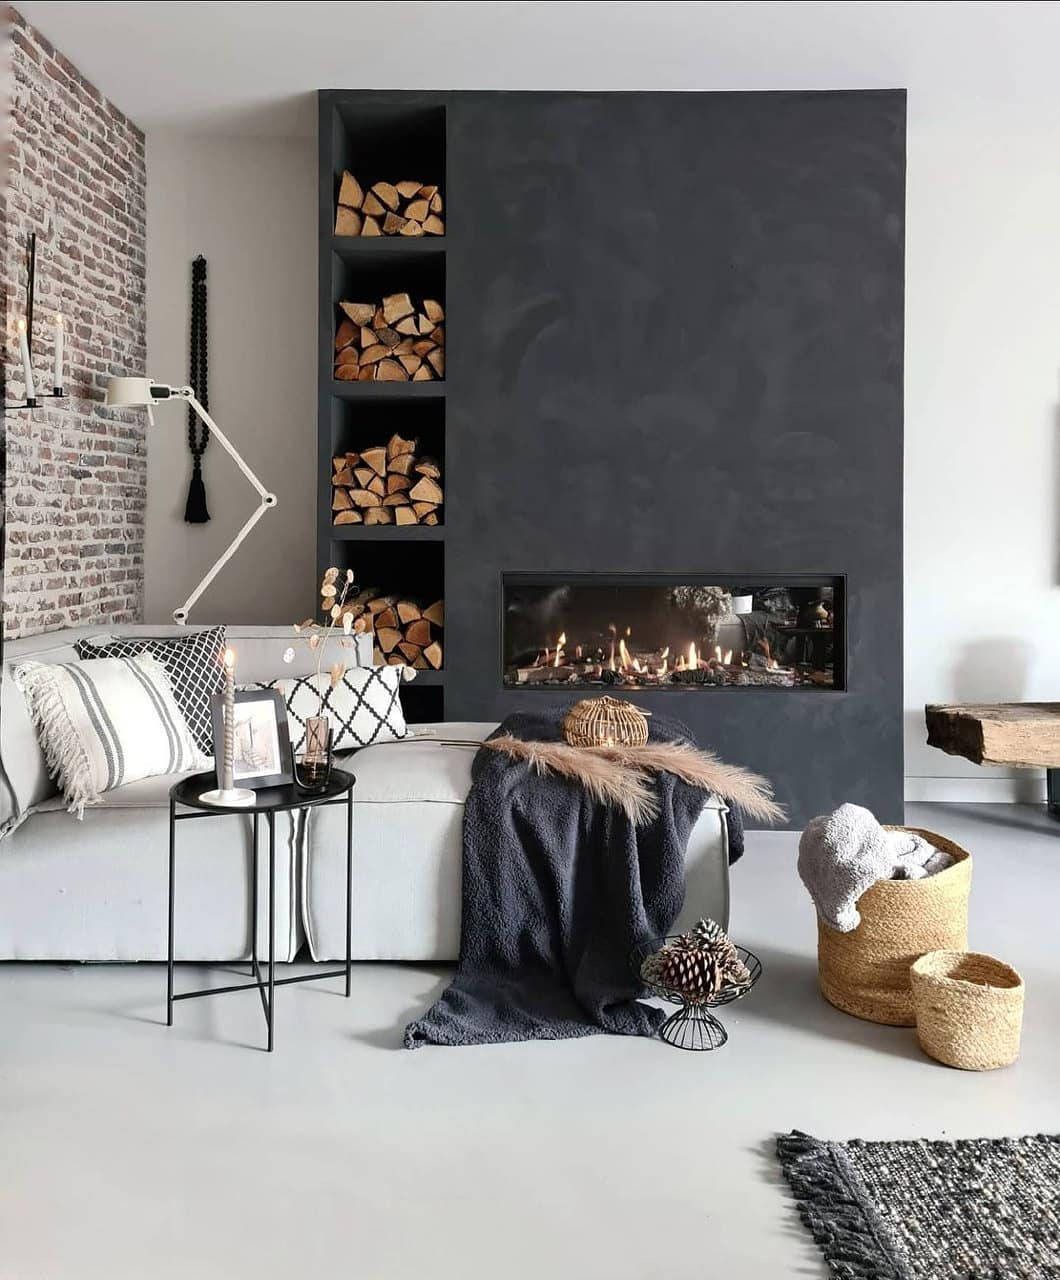 Fireplace industrial decor